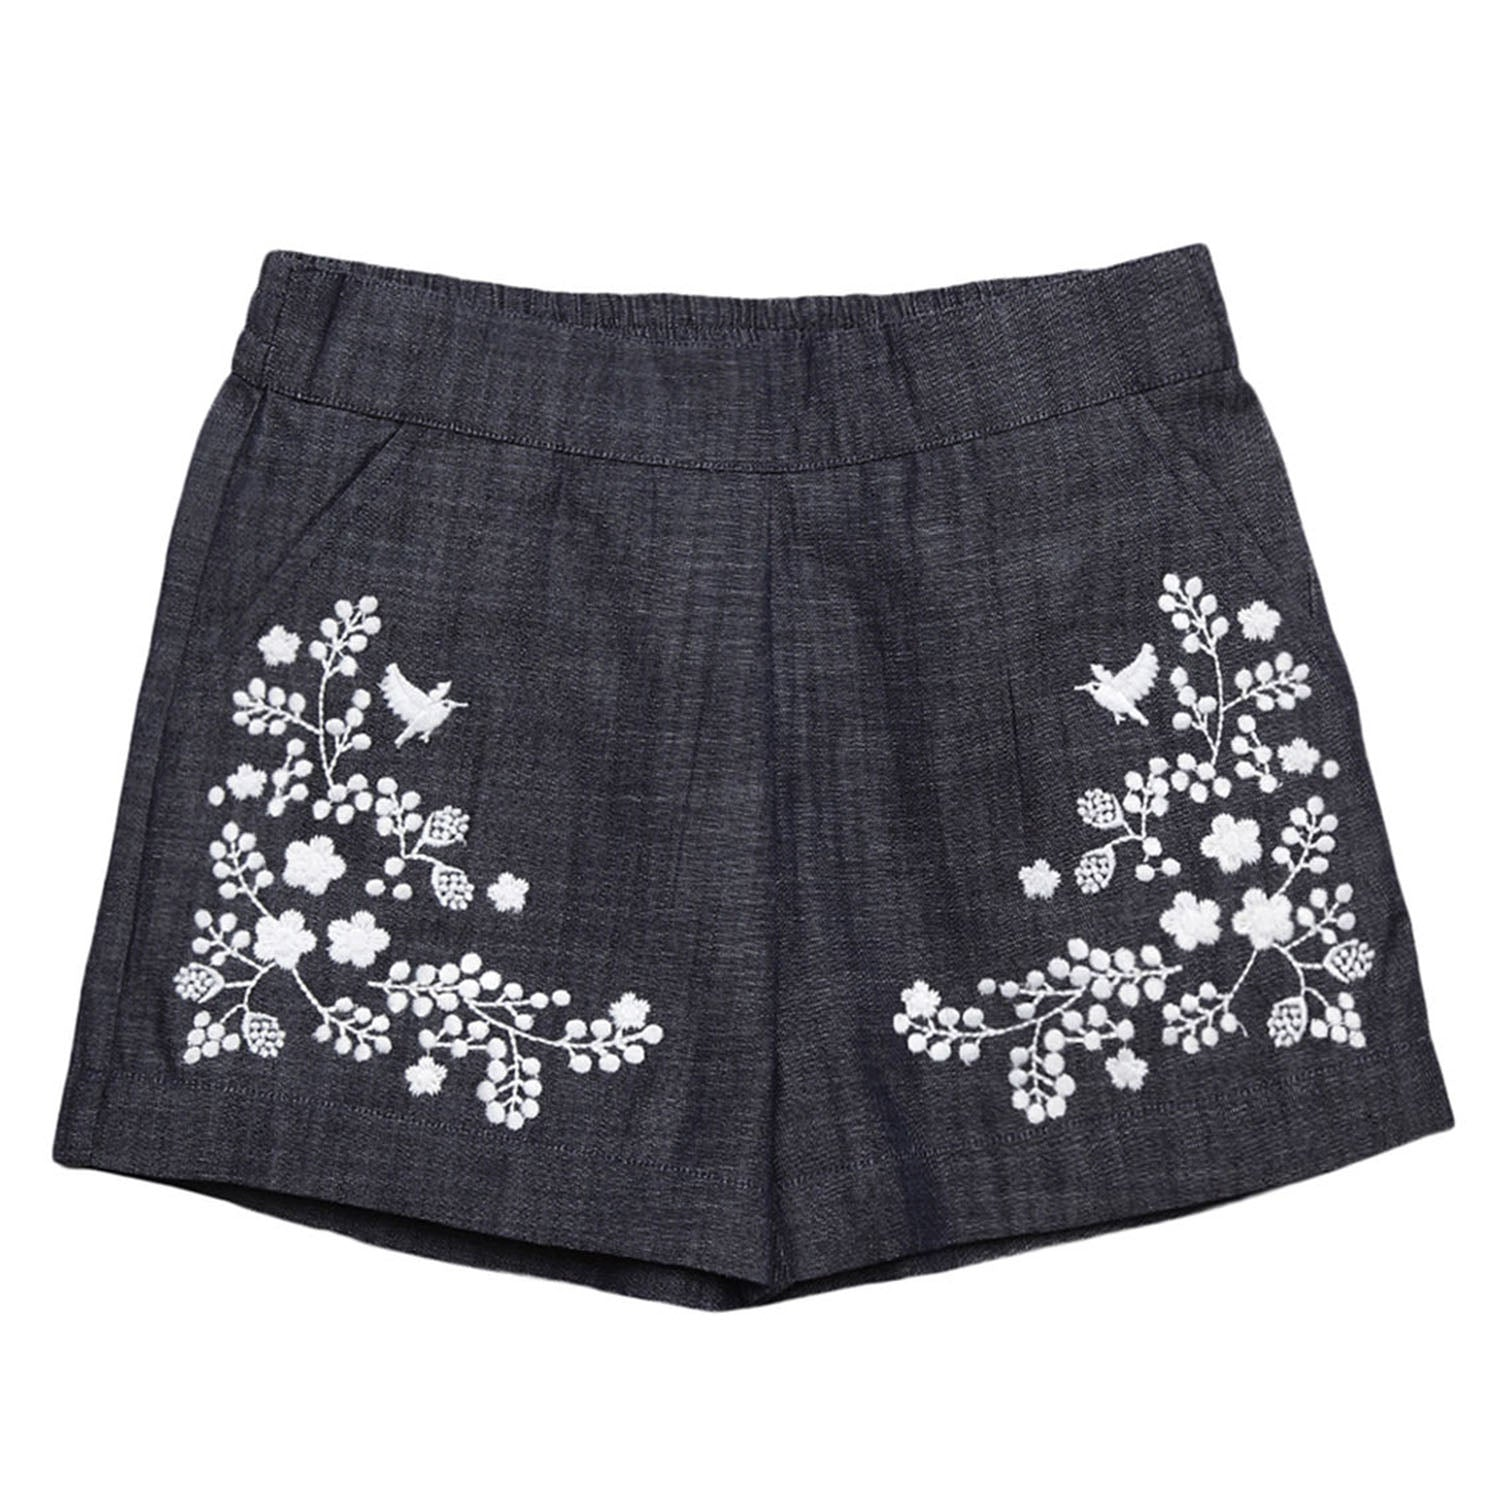 Spring Shorts for Boys & Girls